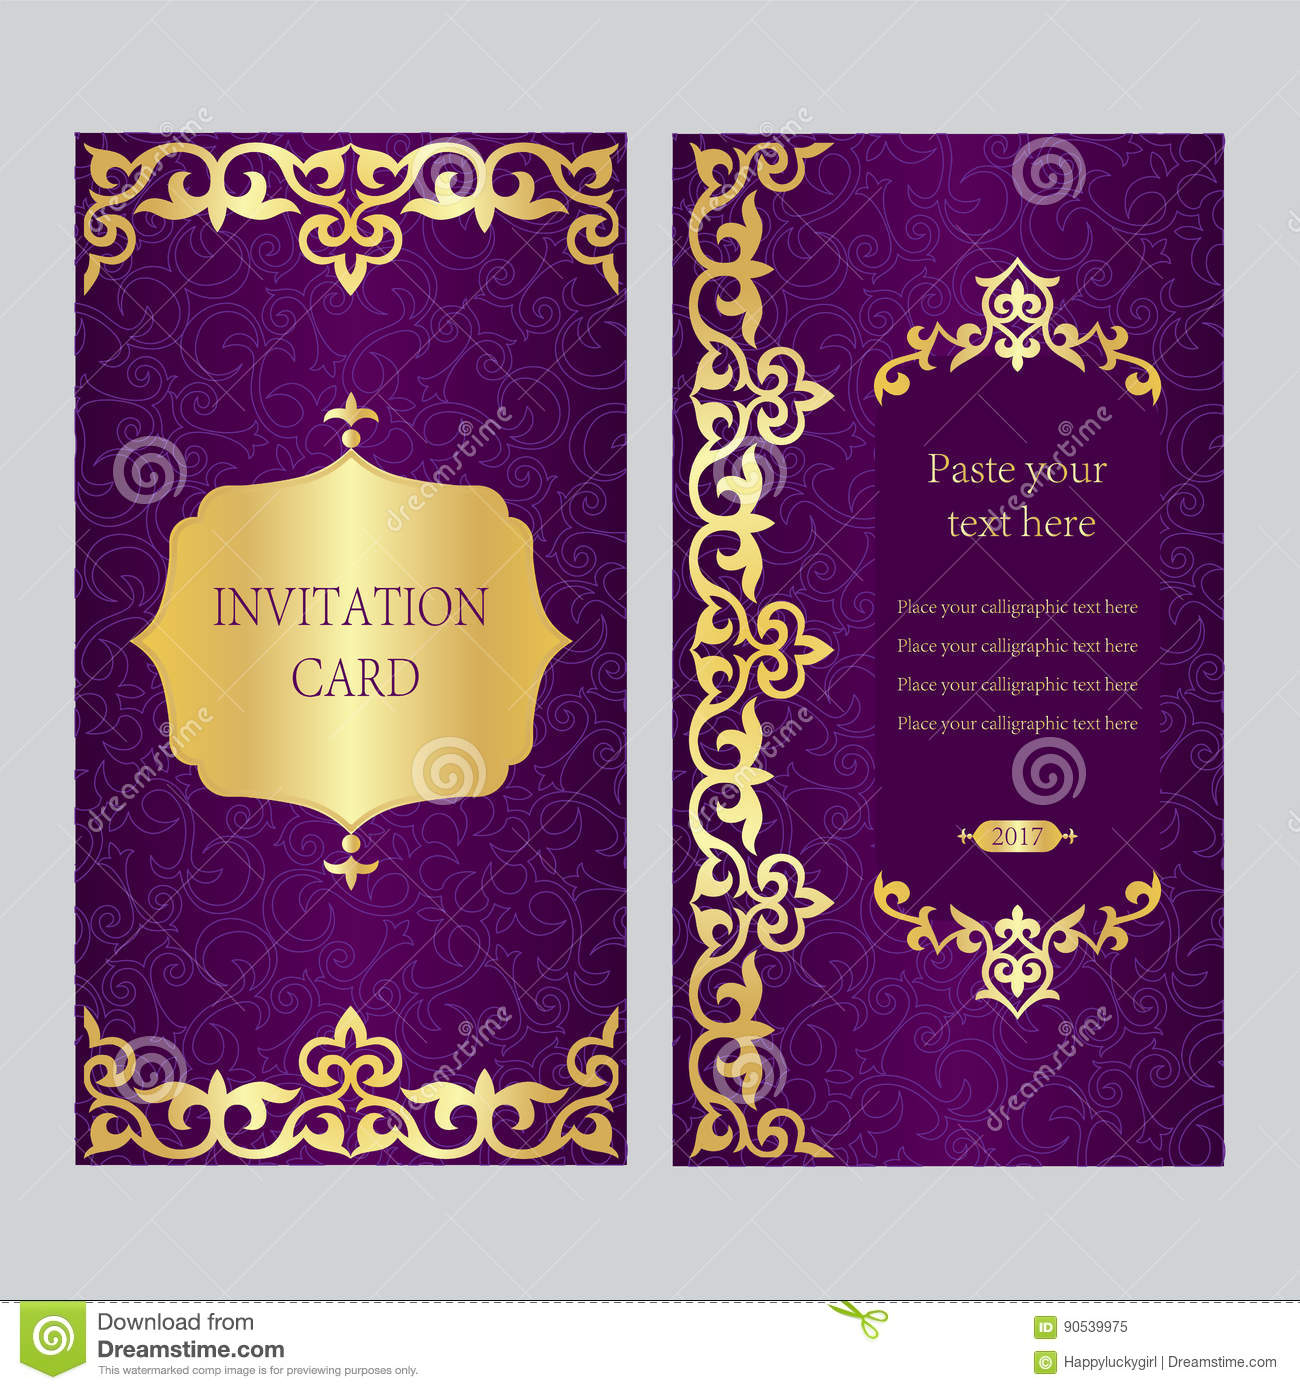 A Set Of Invitation Cards Purple Background With Gold Asian